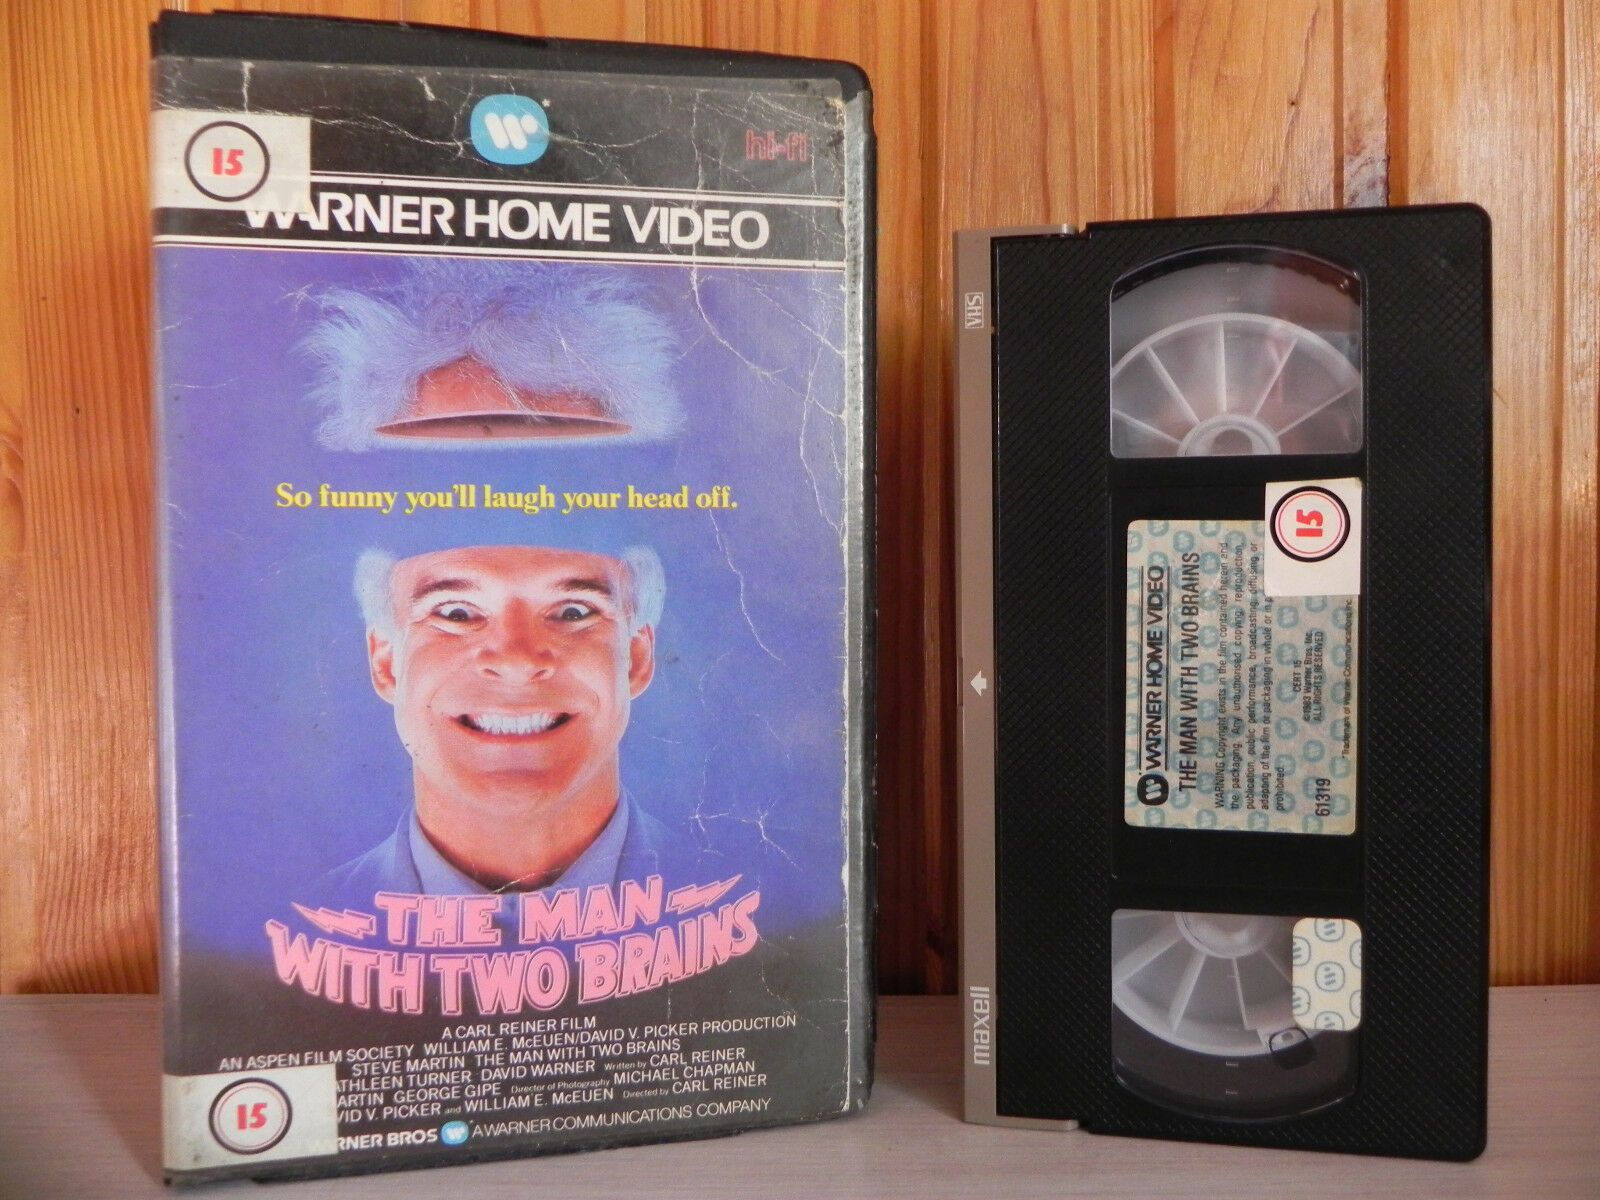 The Man With Two Brains - Big Box - Comedy - Steve Martin - Pre-Cert Video - VHS